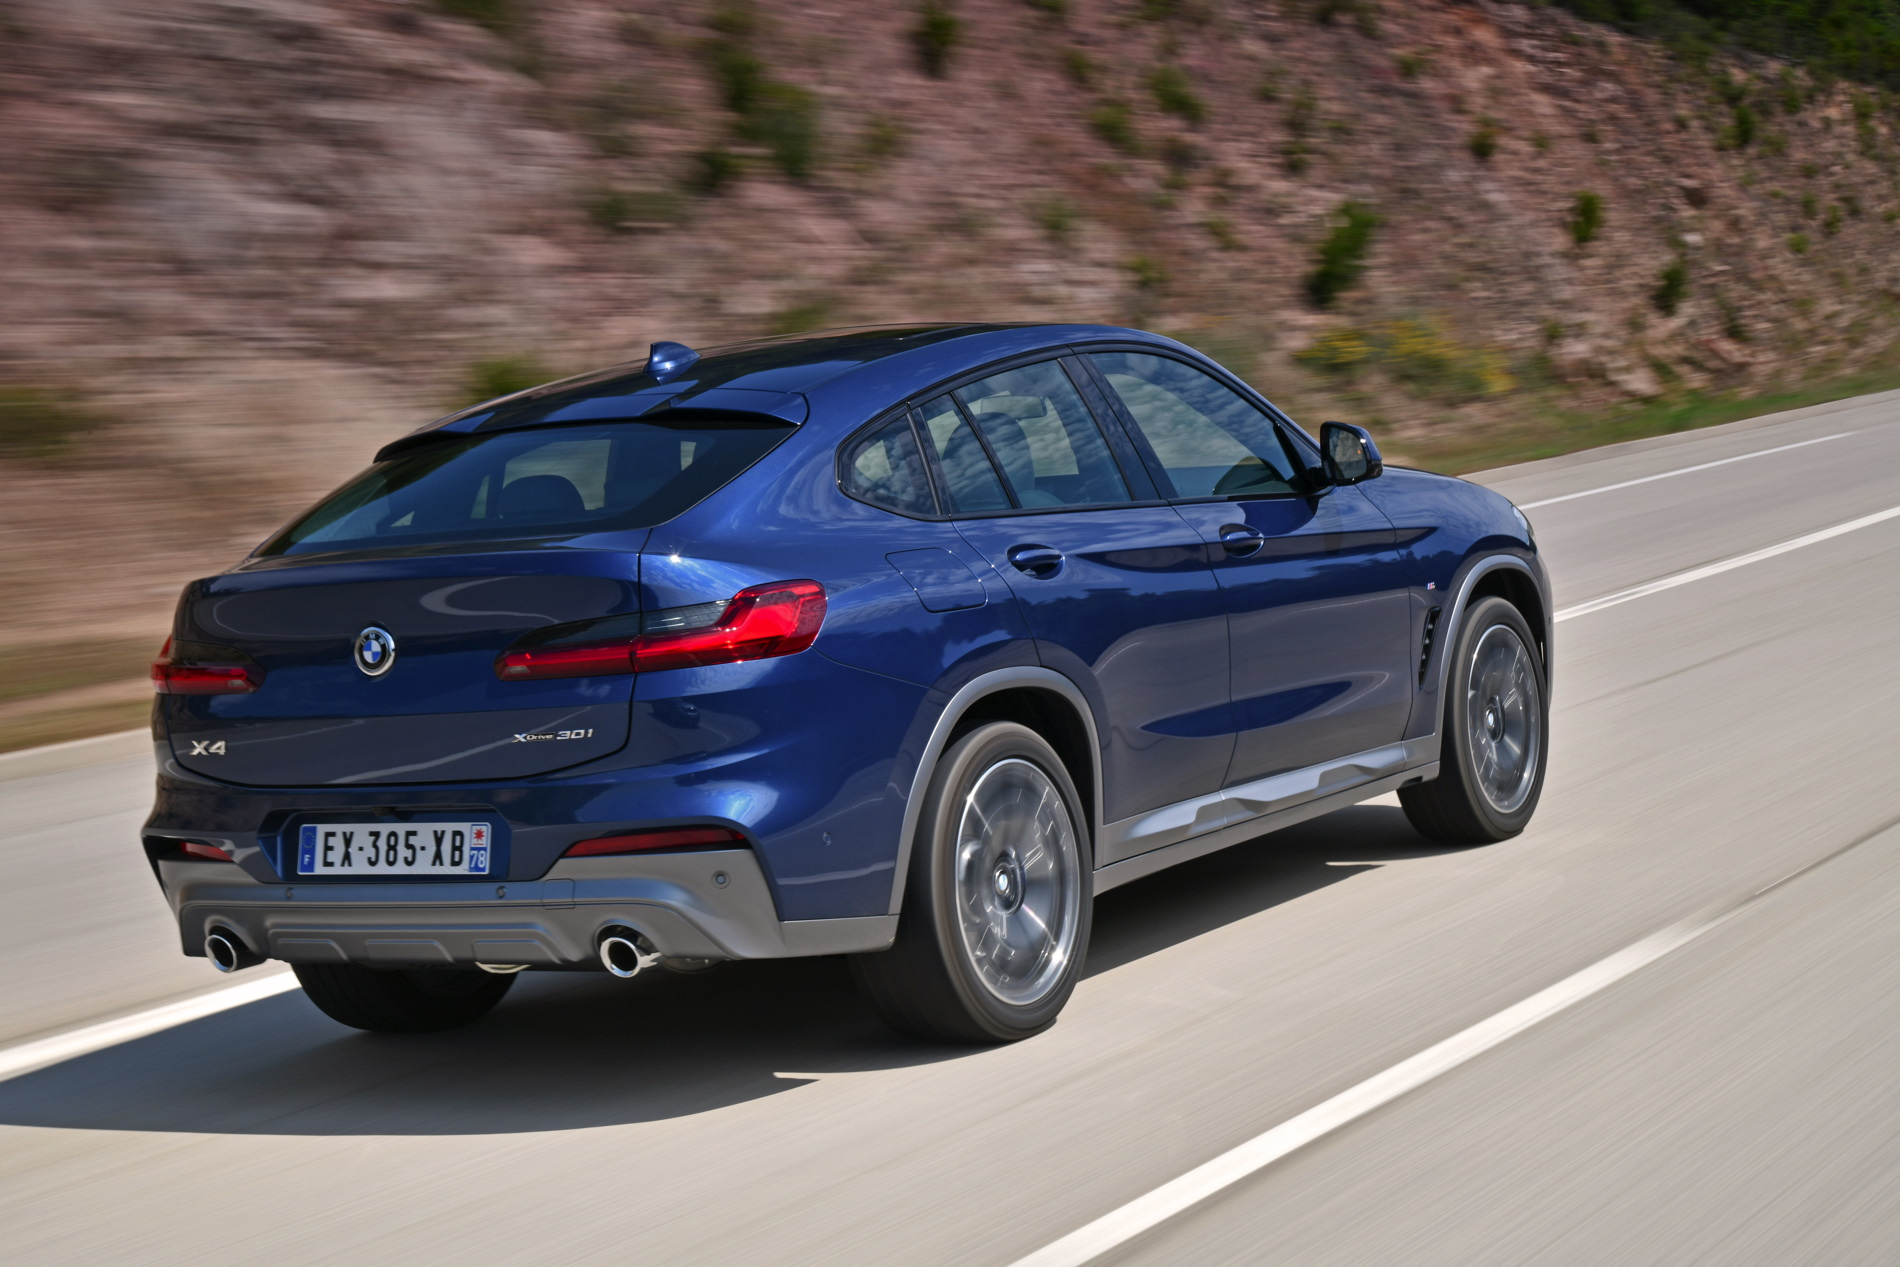 Bmw G02 X4 New Photos In Phytonic Blue